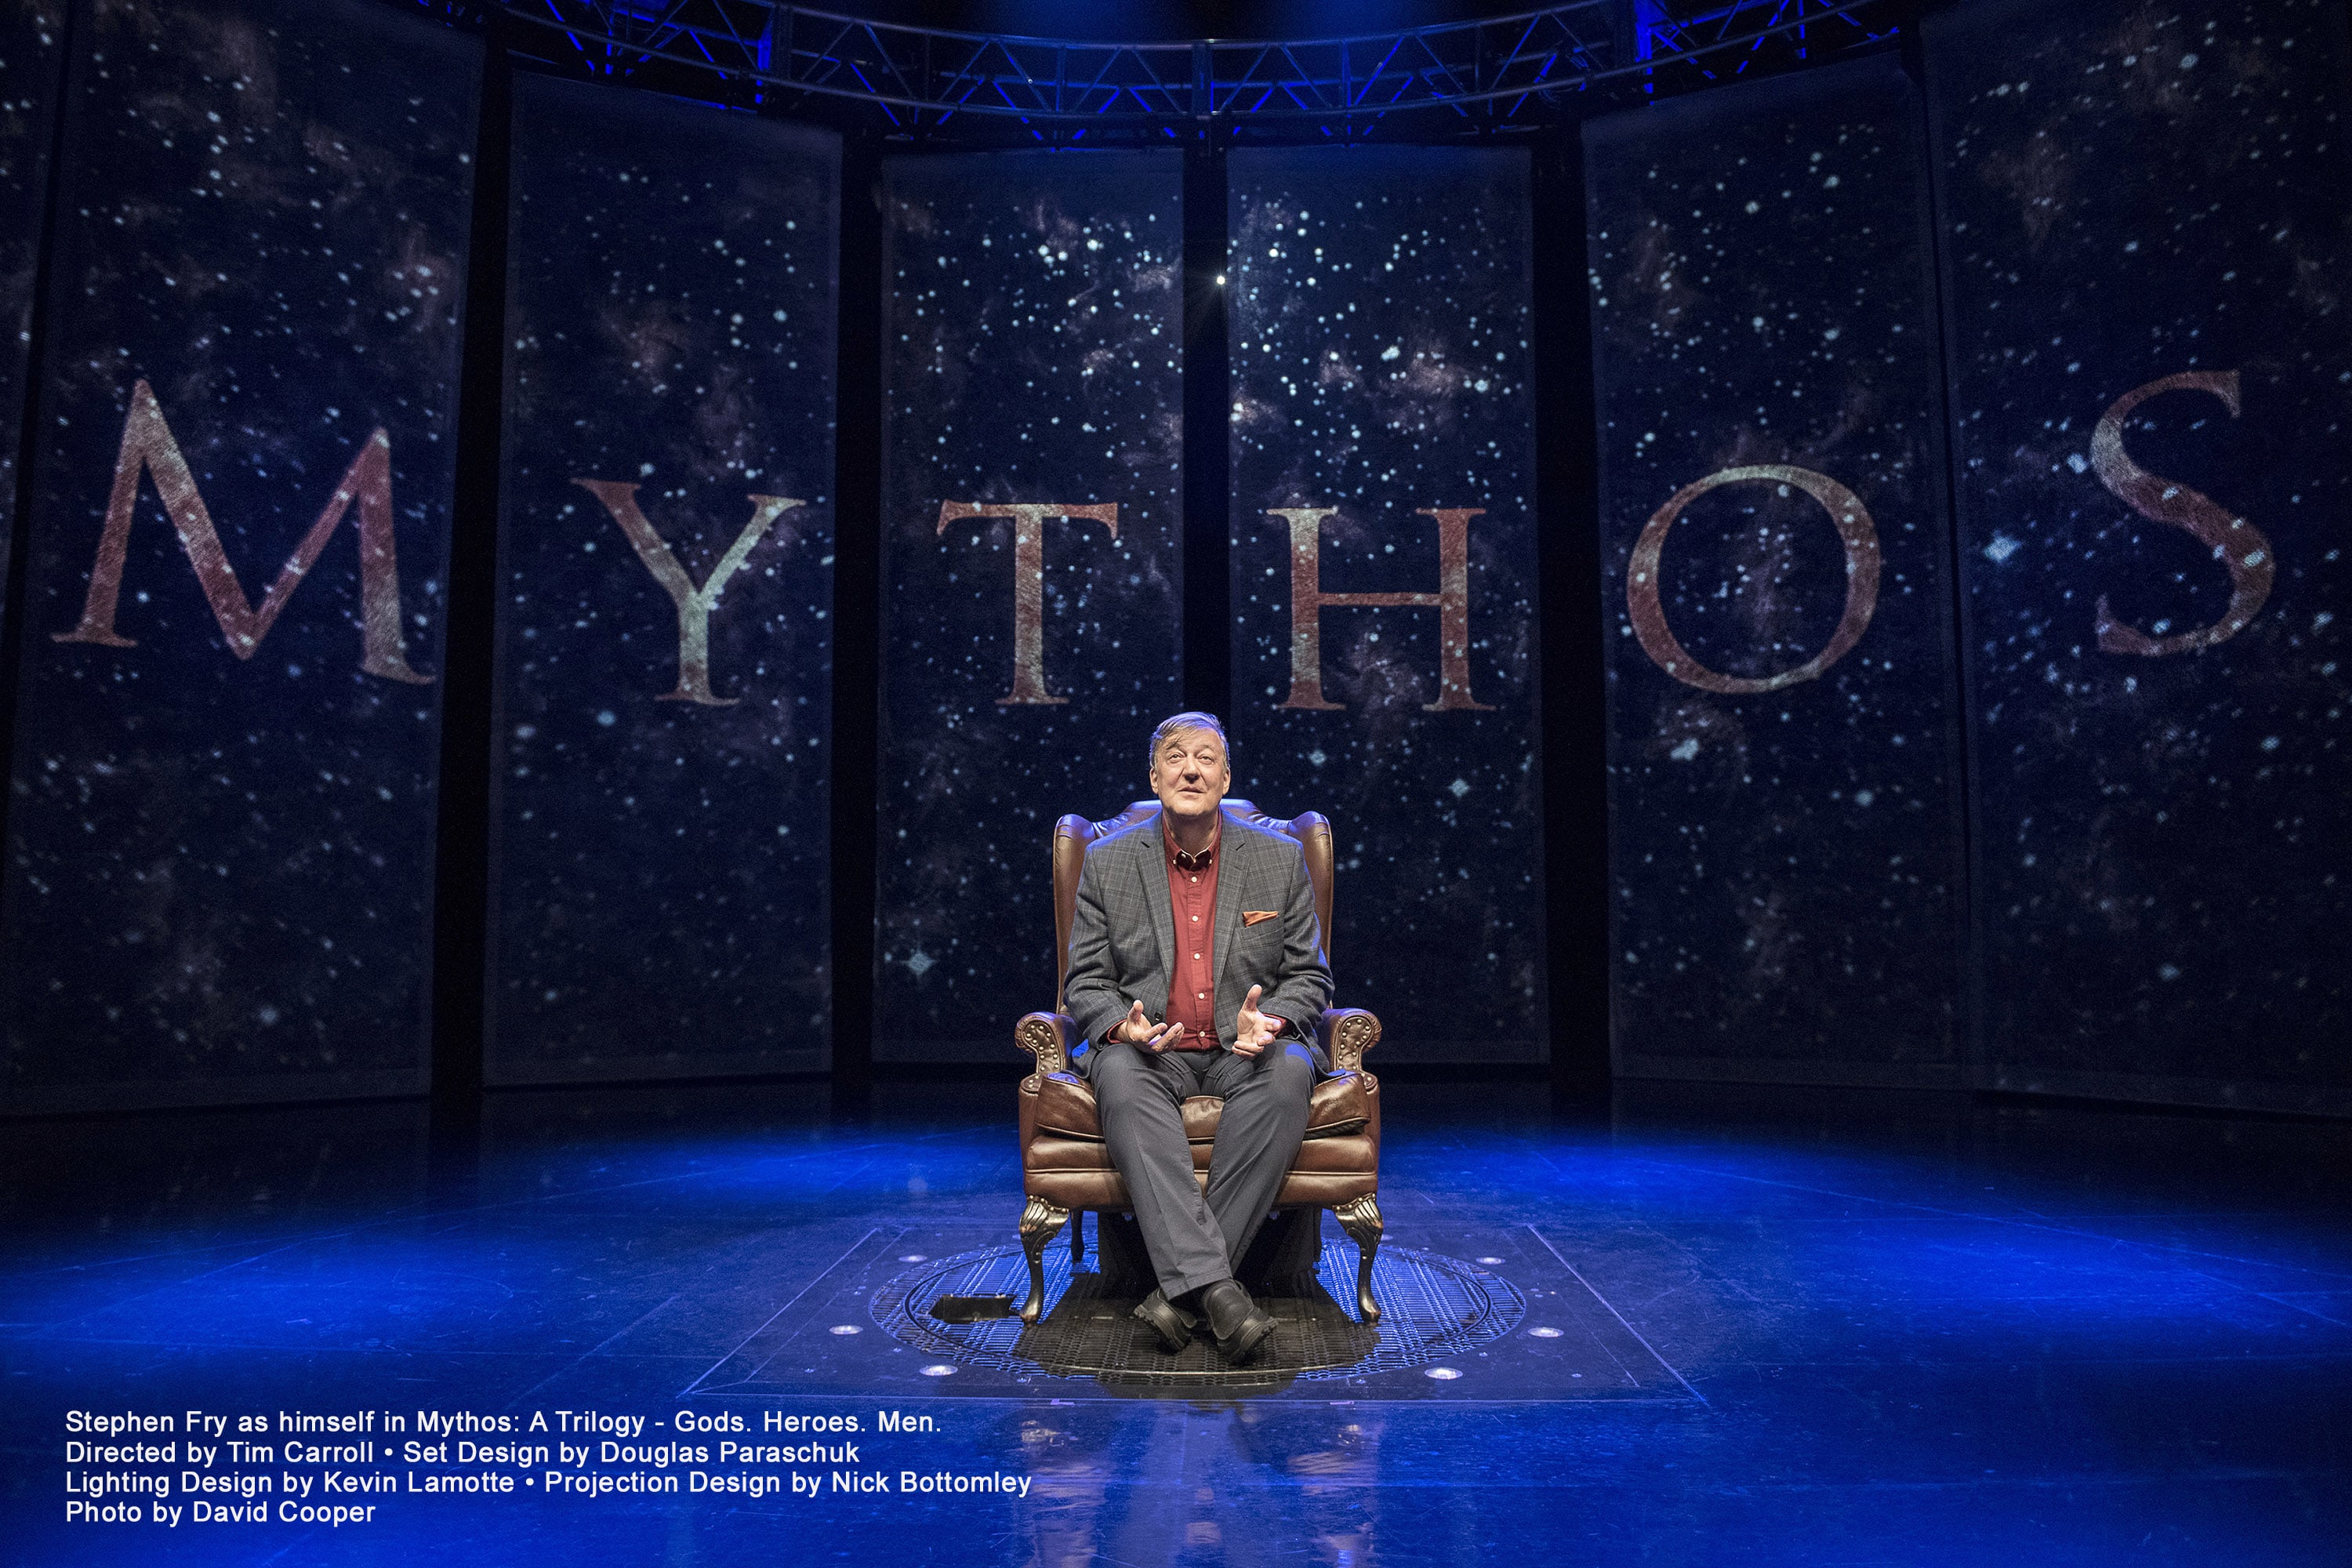 Stephen Fry Mythos Trilogy - New Theatre Oxford - ATG Tickets